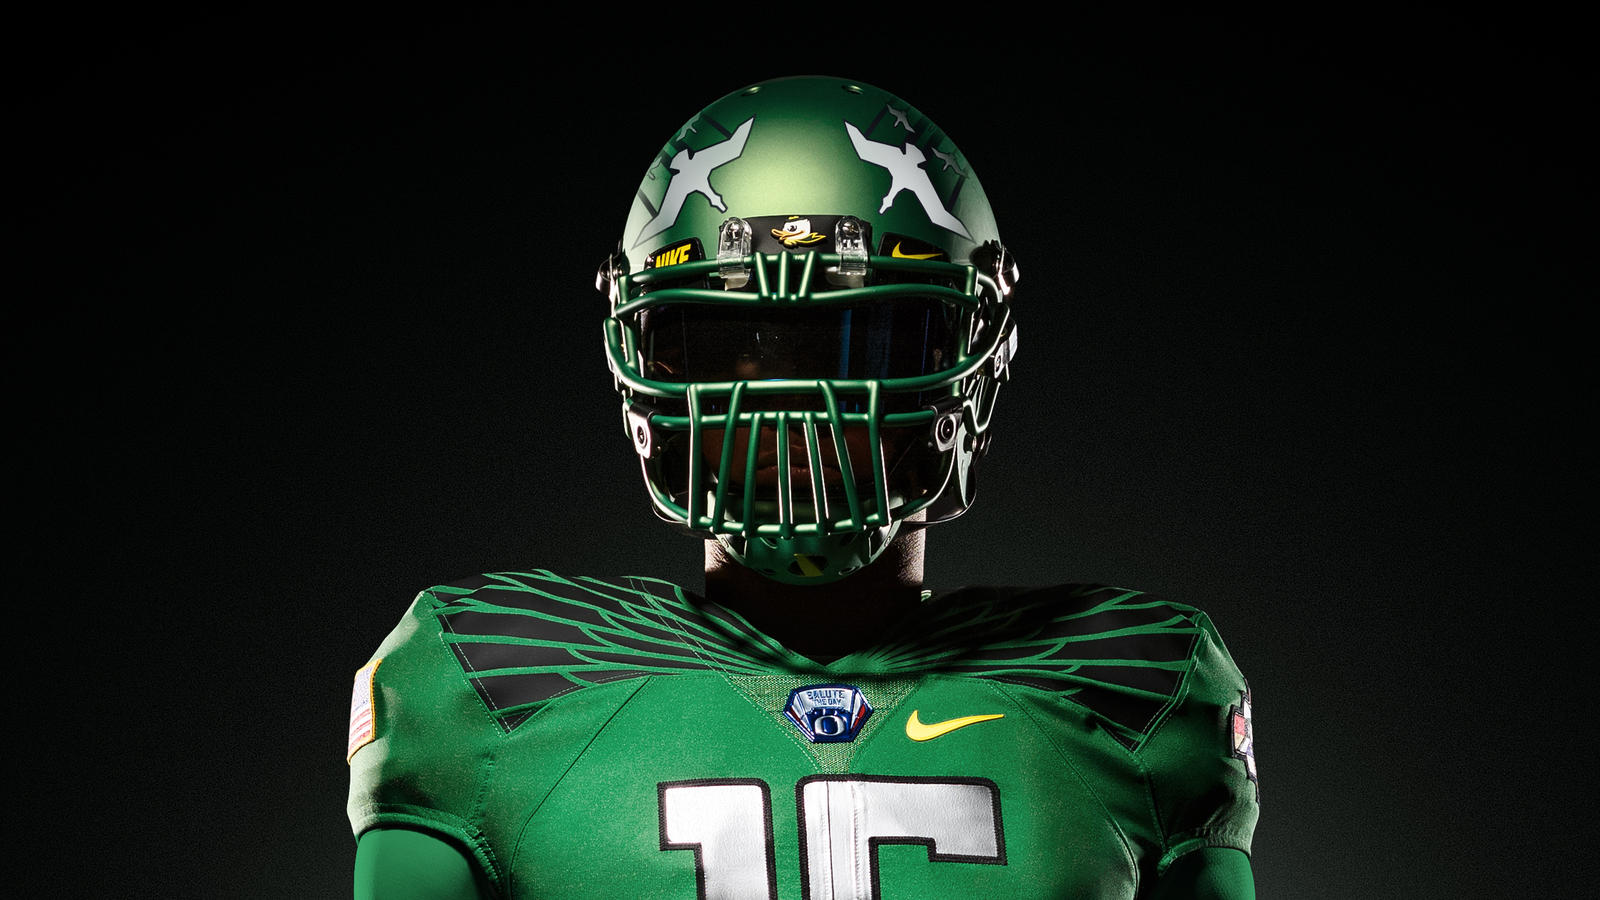 Oregon Ducks Logo With Wings Decal GoDucks.com | The Univ...